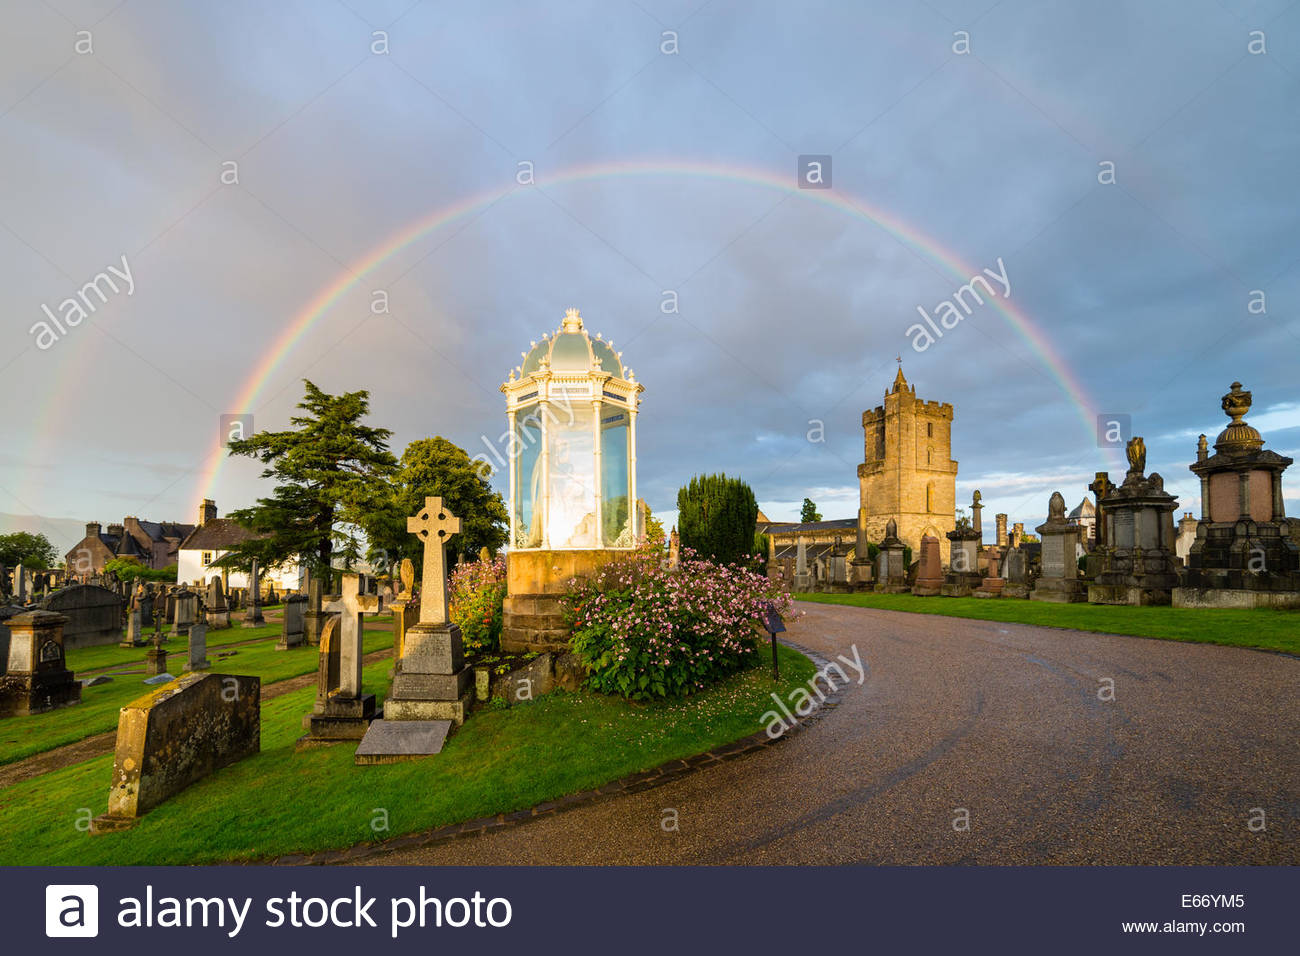 Rainbow in Stirling cemetery, Scotland. - Stock Image